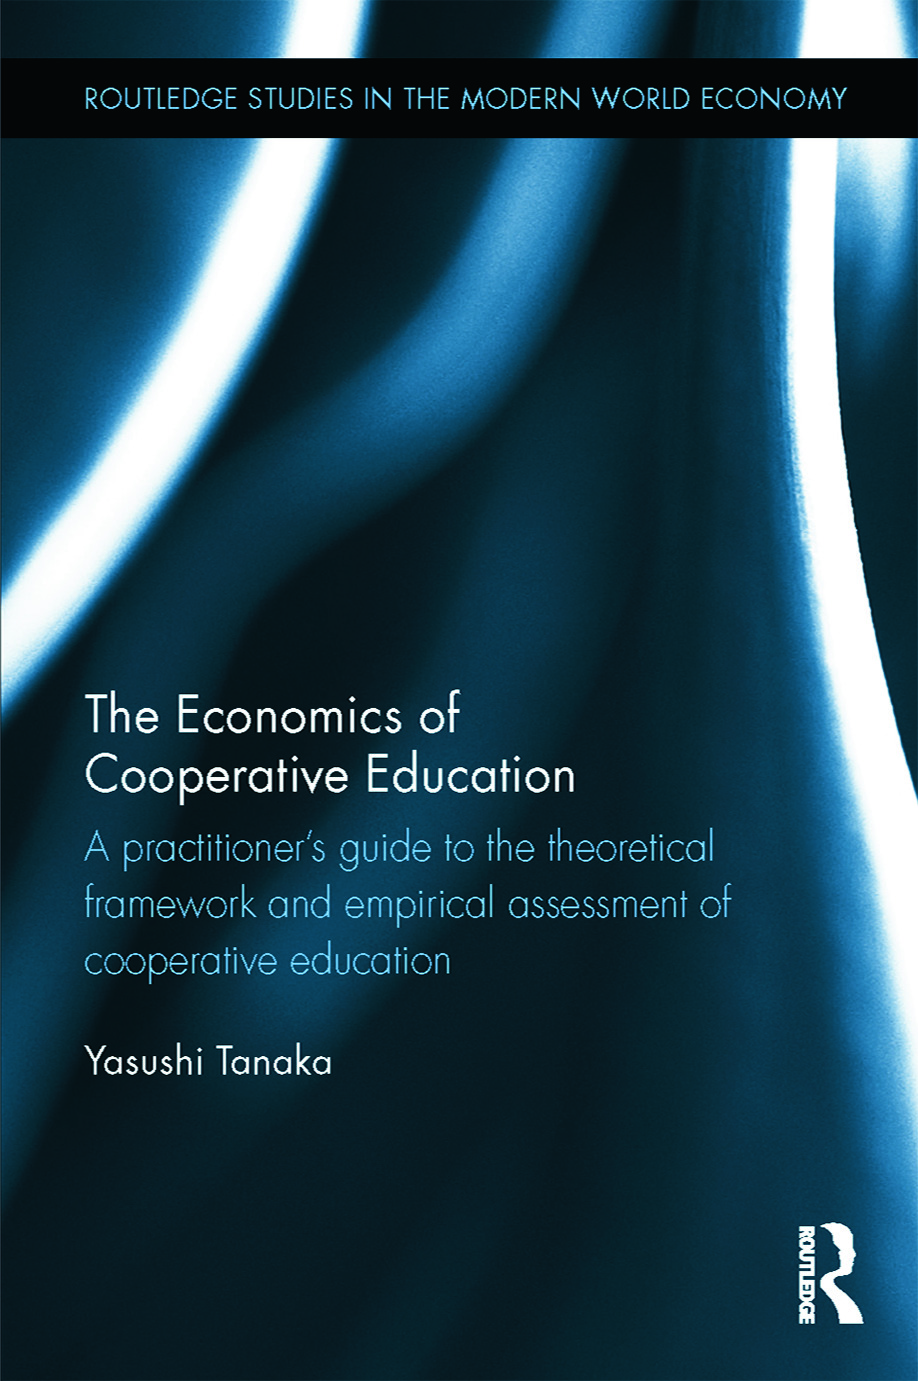 The Economics of Cooperative Education: A practitioner's guide to the theoretical framework and empirical assessment of cooperative education book cover